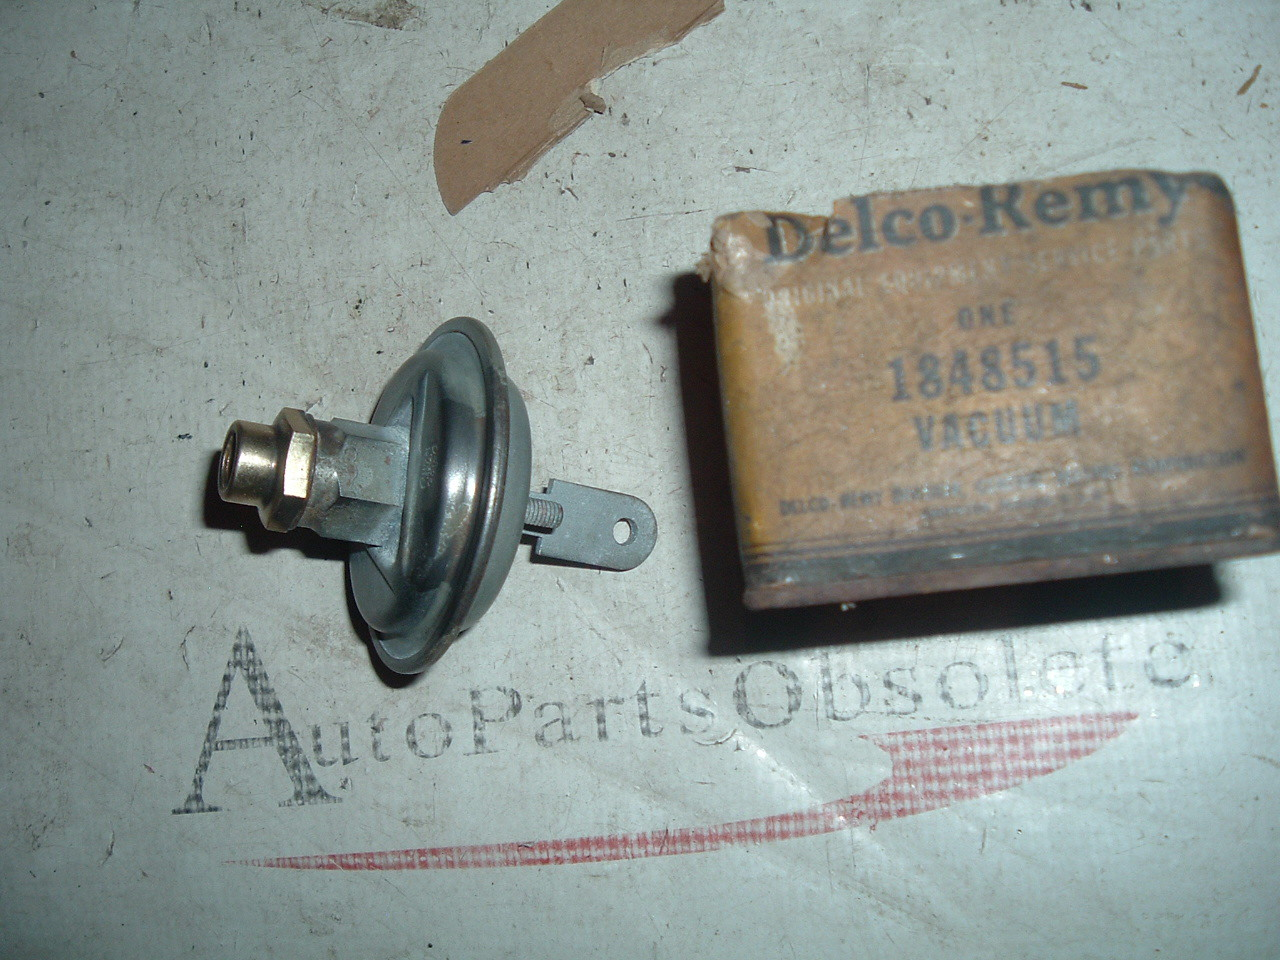 1933 34 35 36 37 chevrolet vacuum advance nos gm # 1848515 (z 1848515)